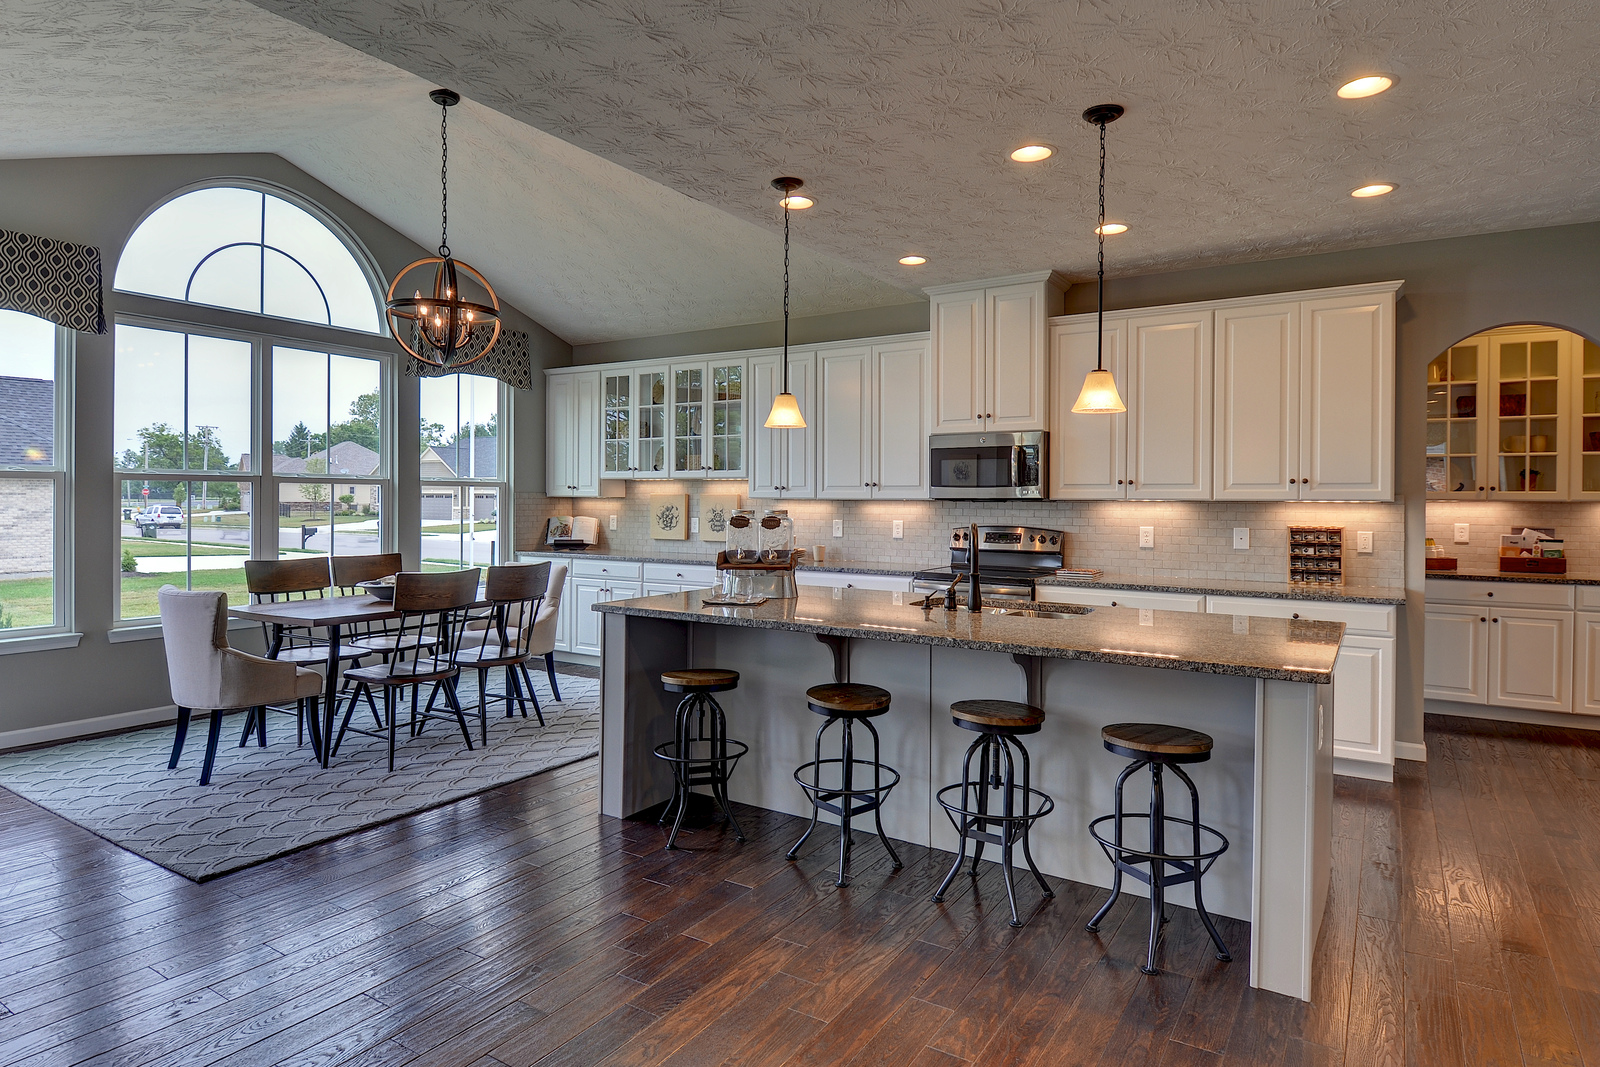 New homes for sale at dover highlands in medina oh within for Kitchen morning room designs